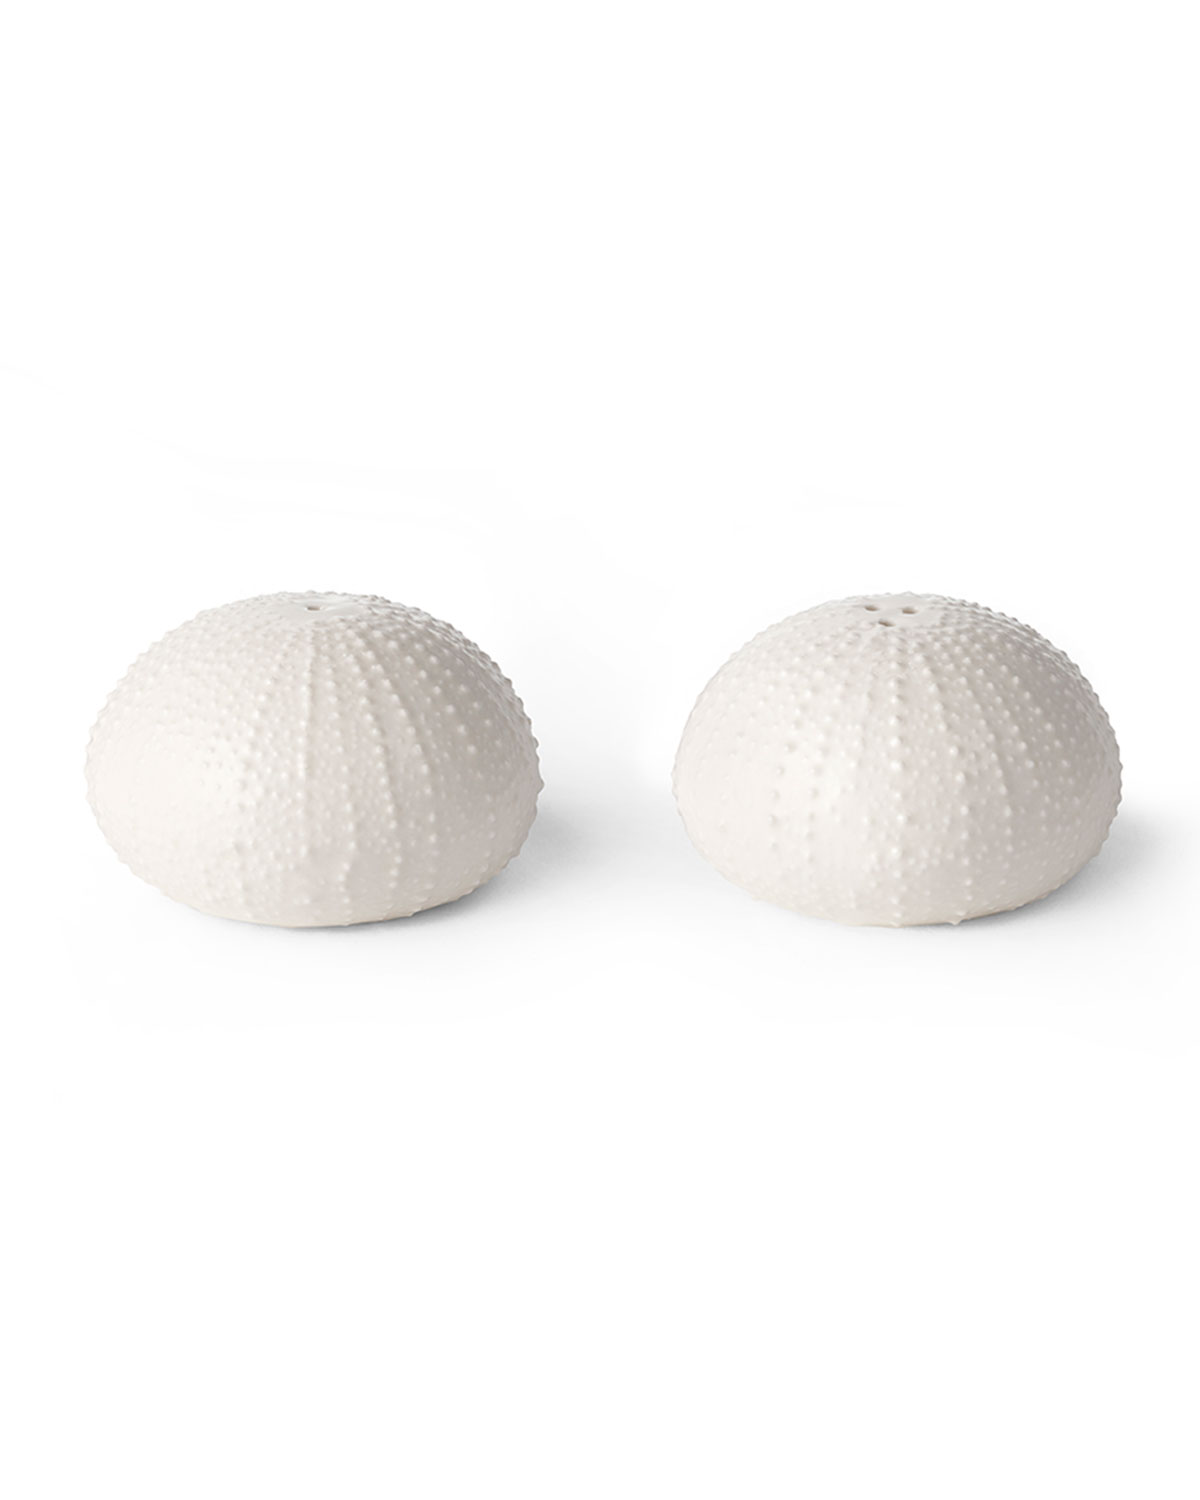 Aerin Kitchen & dinings CERAMIC SEA URCHIN SALT AND PEPPER SHAKERS